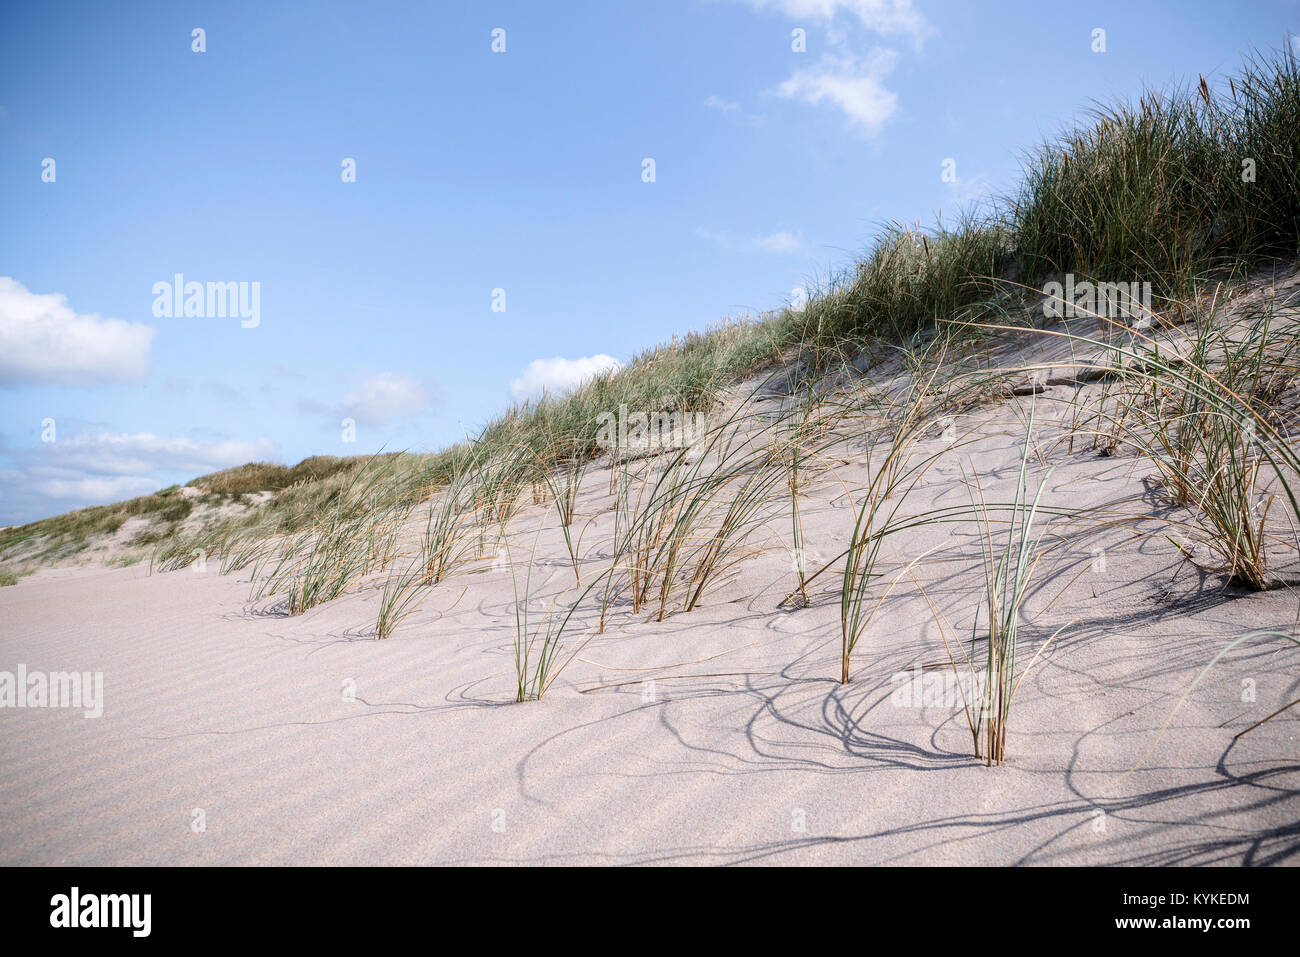 Close-up of lyme grass in danish nature on a beach shore in the summer - Stock Image